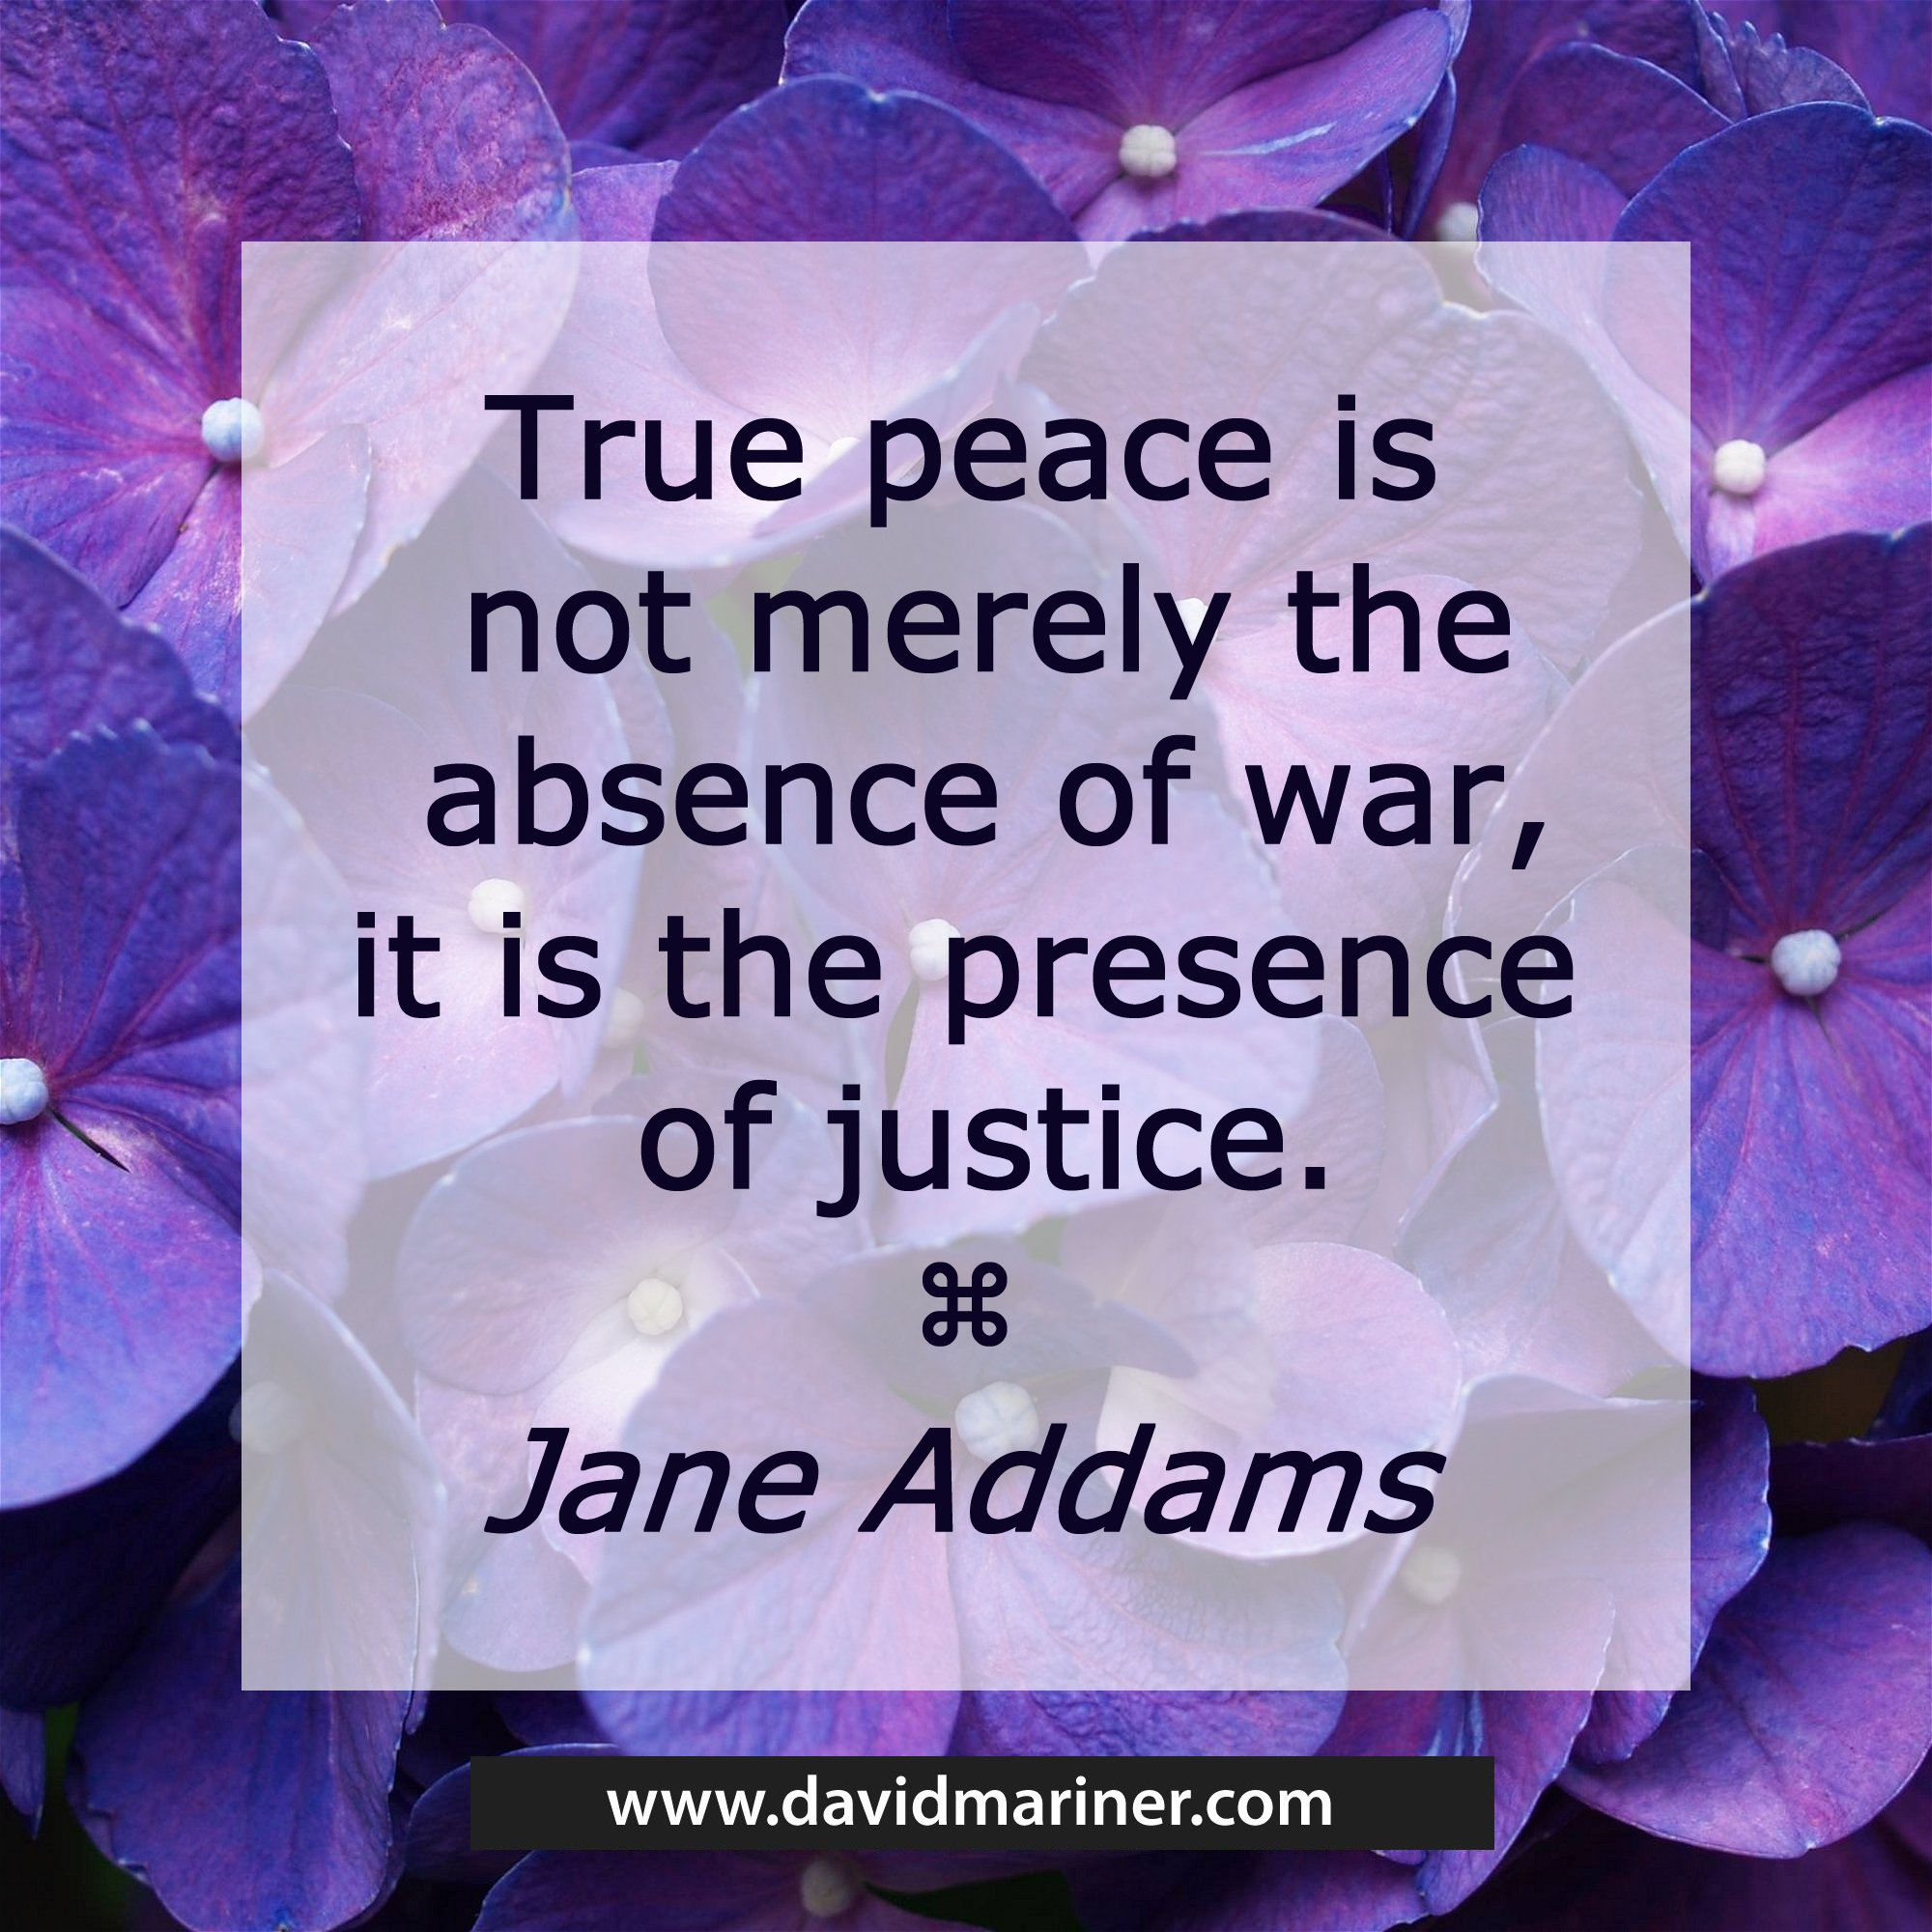 True peace is not merely the absence of war, it is the presence of justice. - Jane Addams